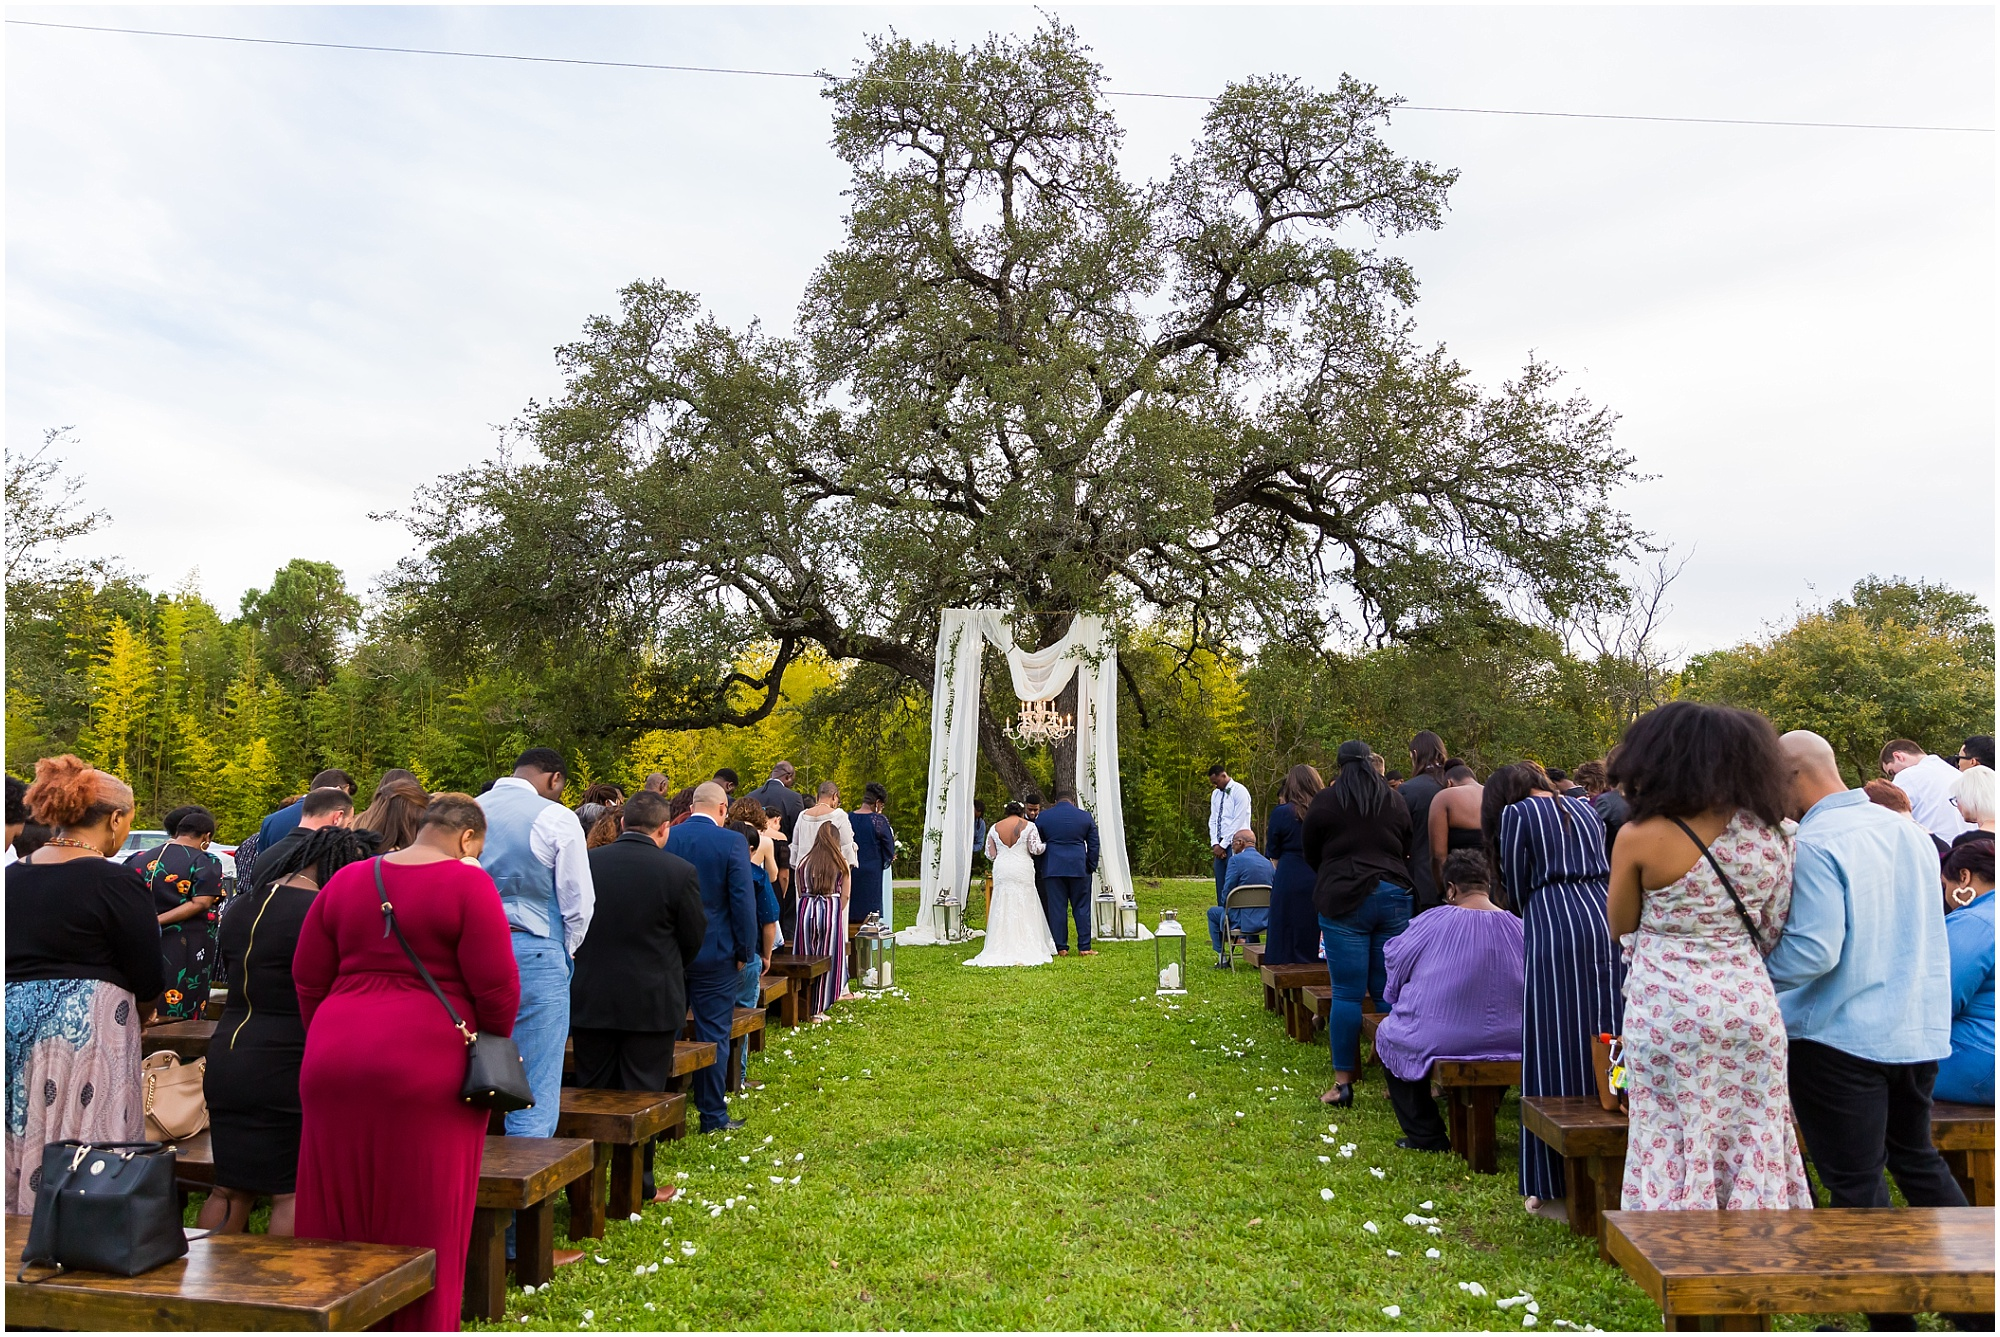 A bride and groom stand under a large oak tree during their wedding ceremony at Lover's Leap in Cameron Park, Waco, Texas - Jason & Melaina Photography - www.jasonandmelaina.com